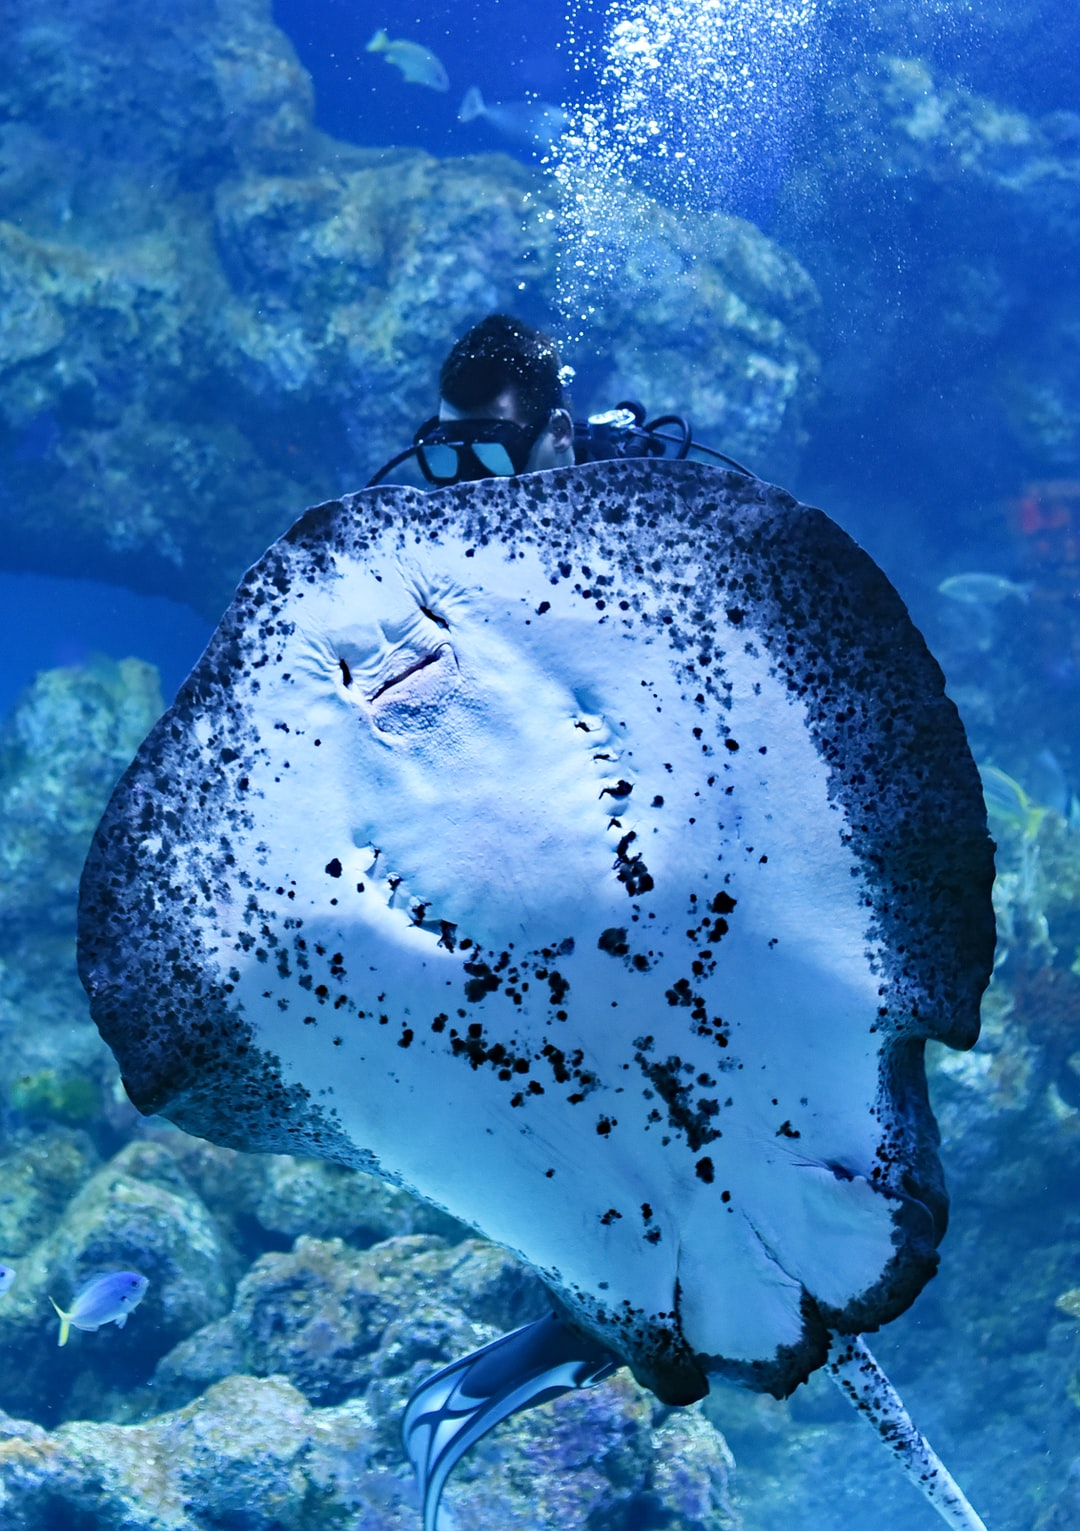 Enormous stingrays being hand fed by two scuba divers at the Cairns aquarium.